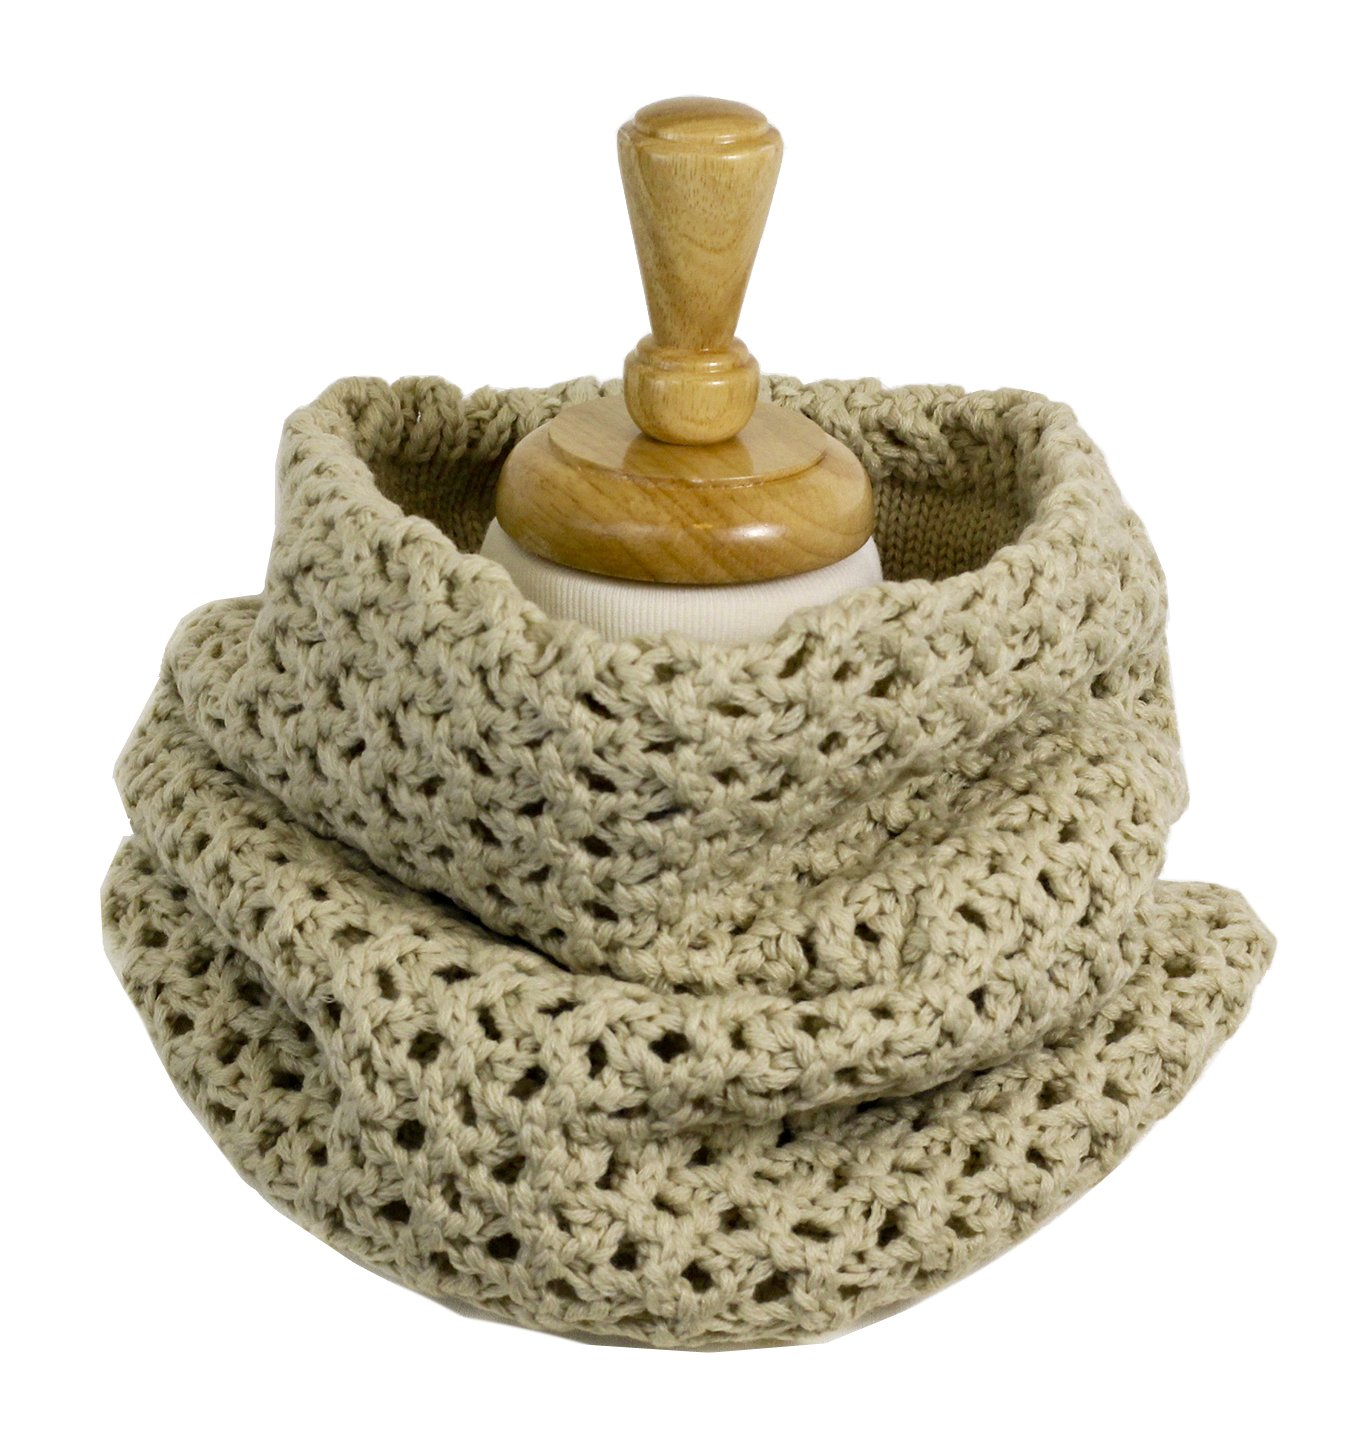 Cozy Chunky Knitted Cowl Scarf for Women / Men